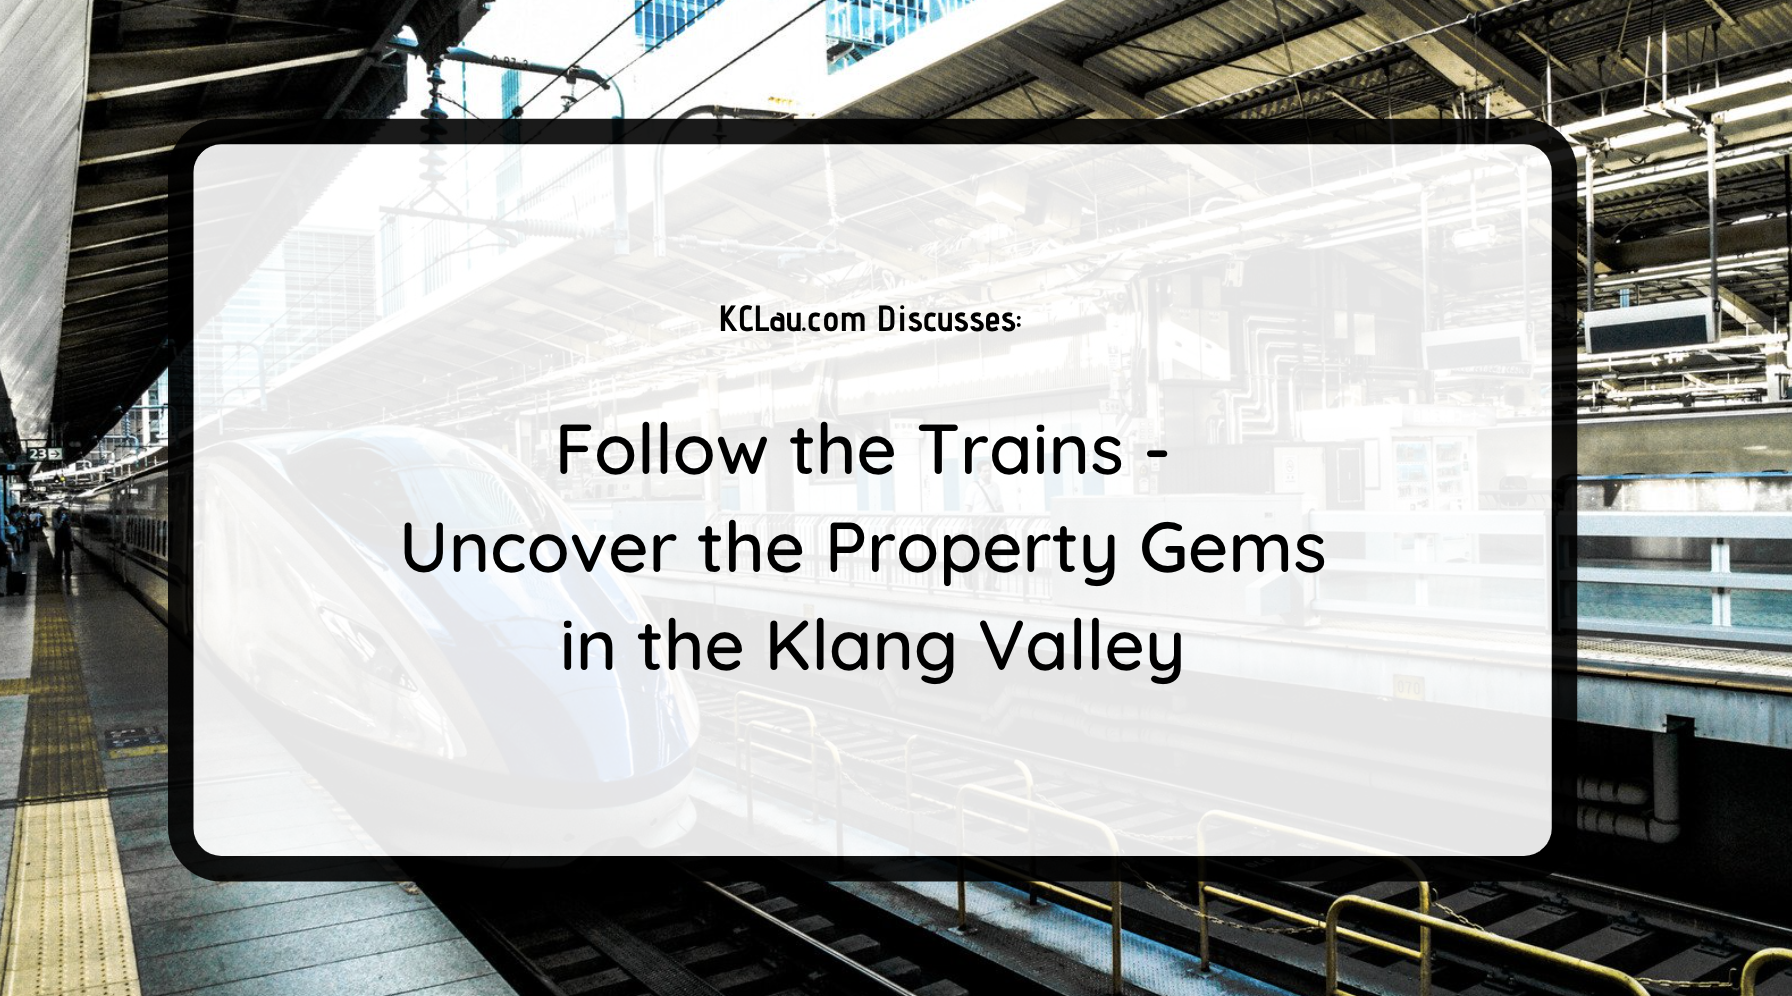 Follow the Trains – Uncover the Property Gems in the Klang Valley